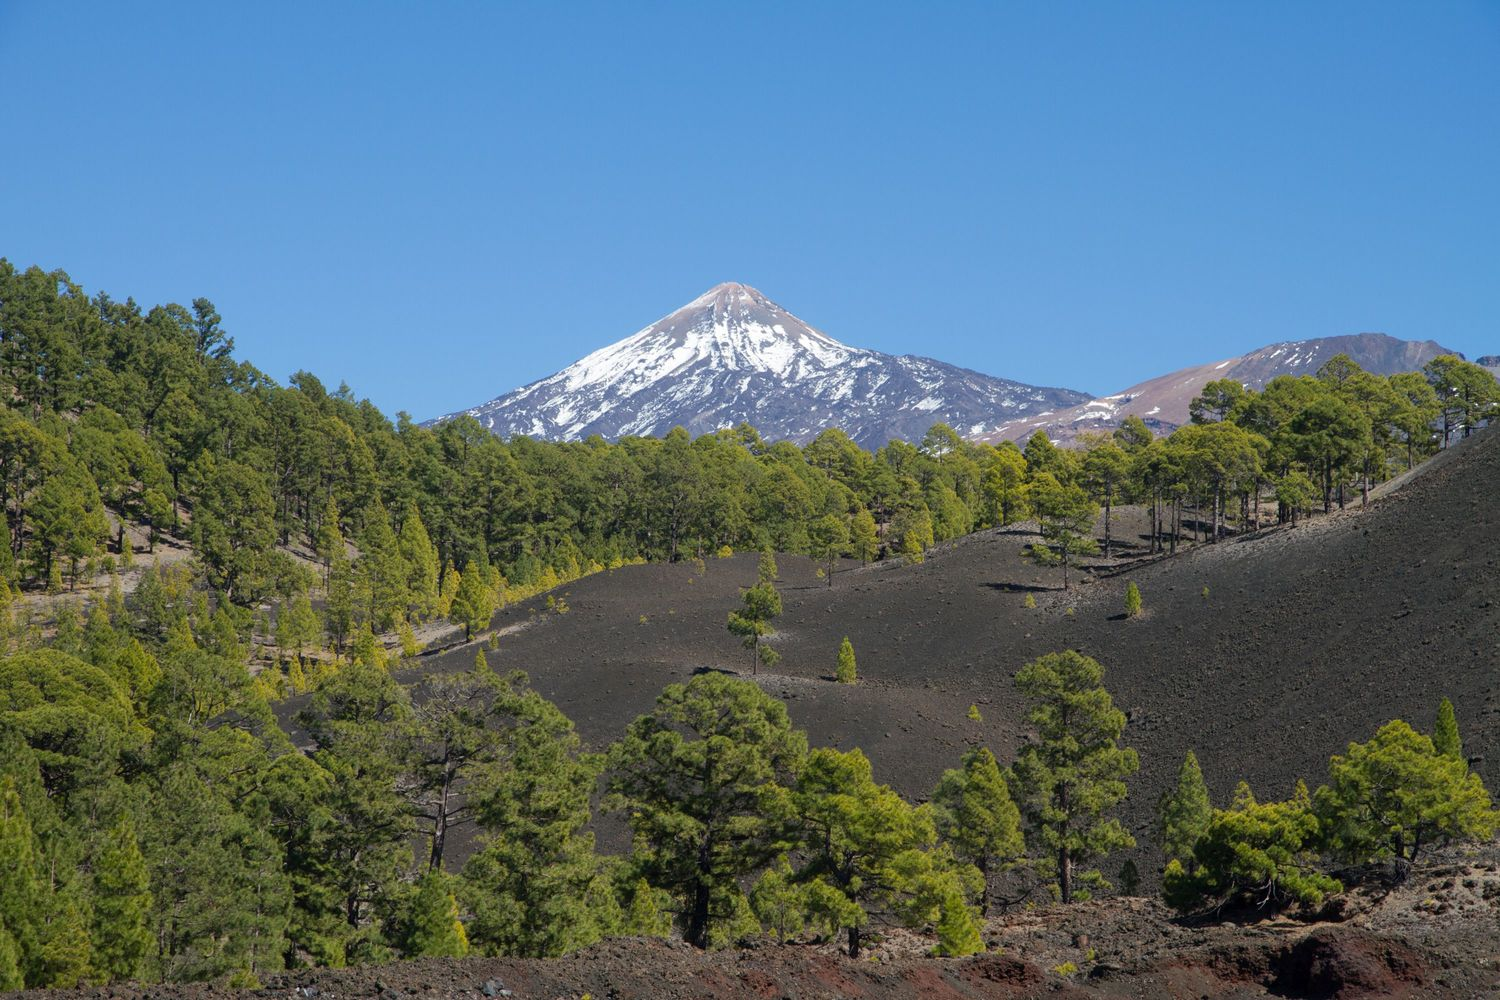 Plant checklists for geographic regions like the island of Tenerife form the basis of the GIFT database. Here 630 native plant species occur from dry coastal scrublands up to the alpine vegetation of Mount Teide. Around 120 of the species only occur on this particular island and more than 300 species are restricted to the Canary Islands.